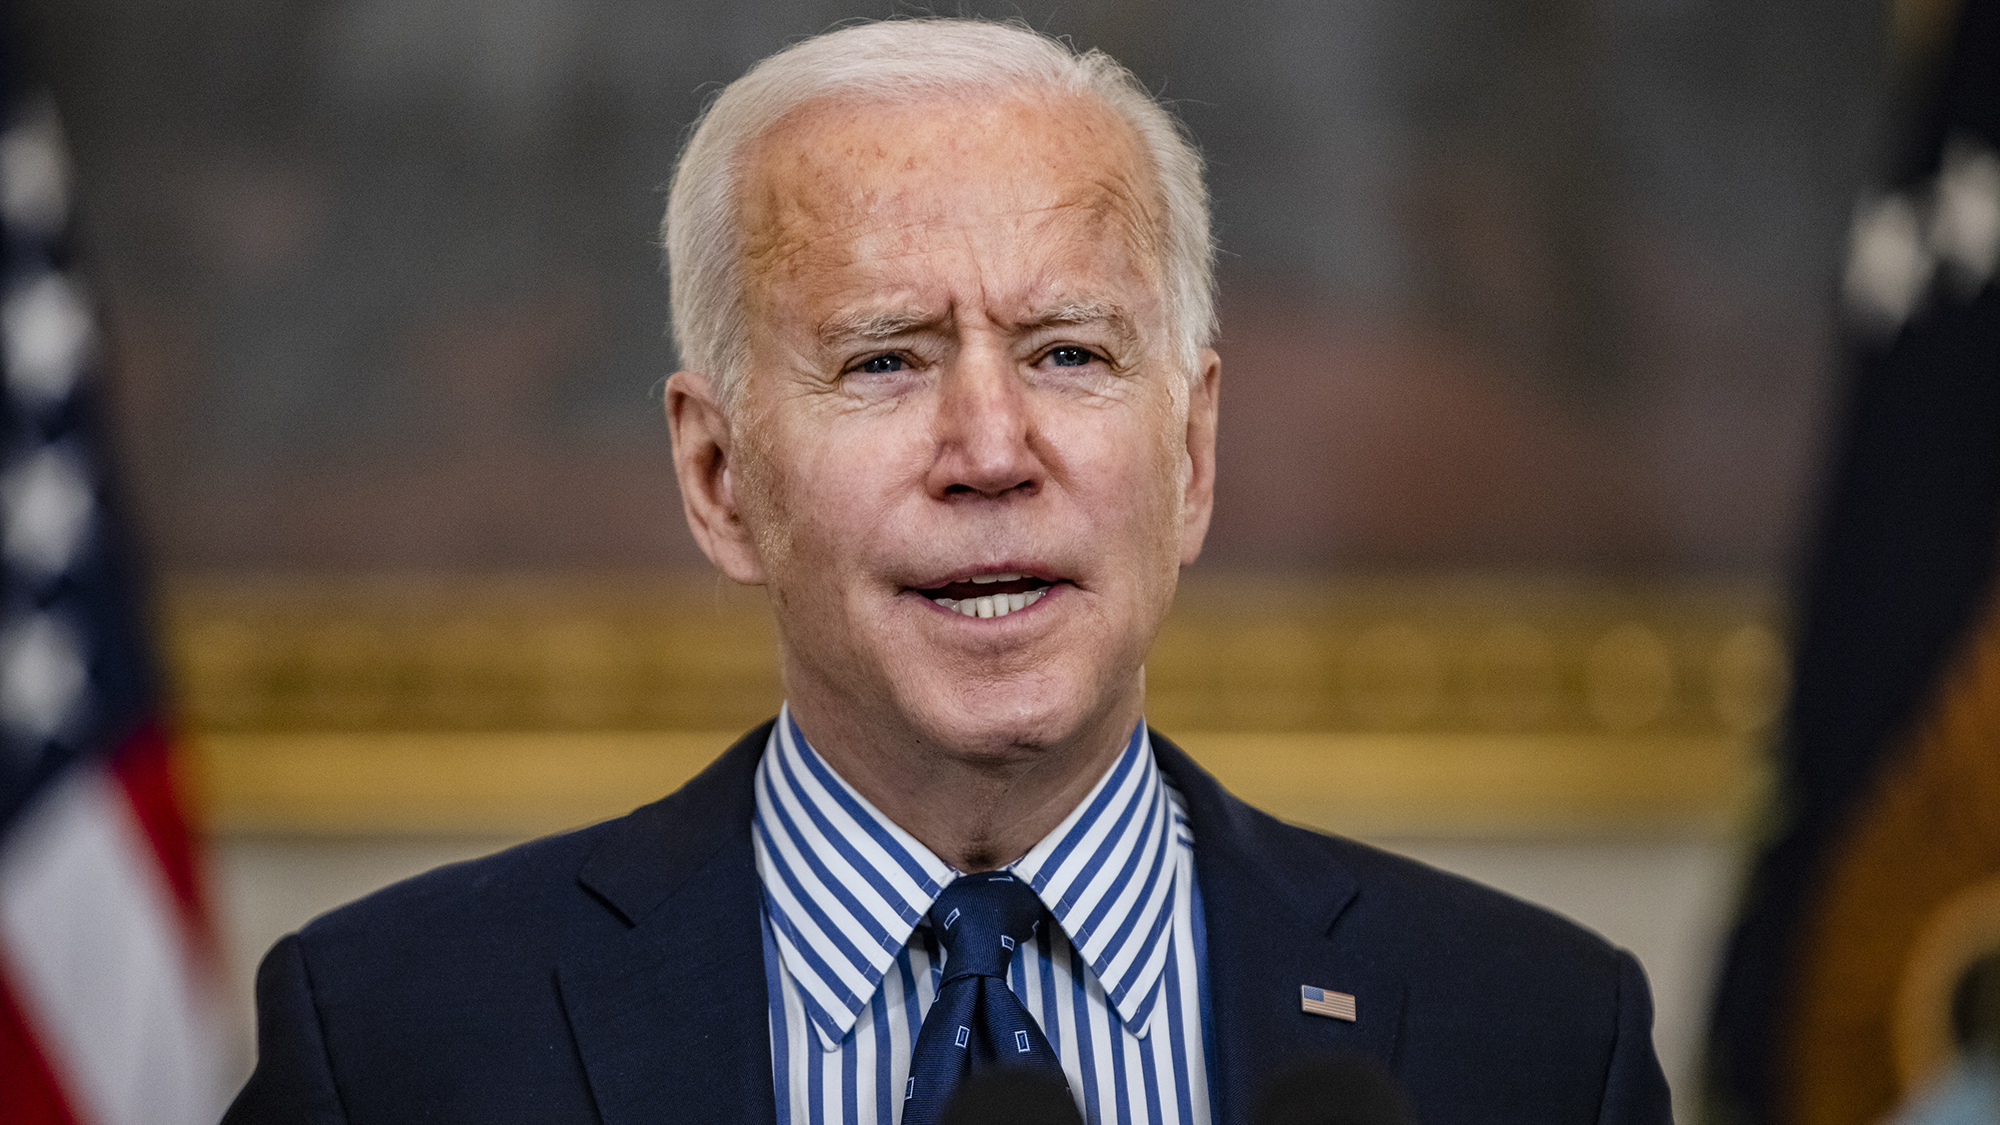 Biden to sign executive orders establishing Gender Policy Council and addressing sexual violence in education